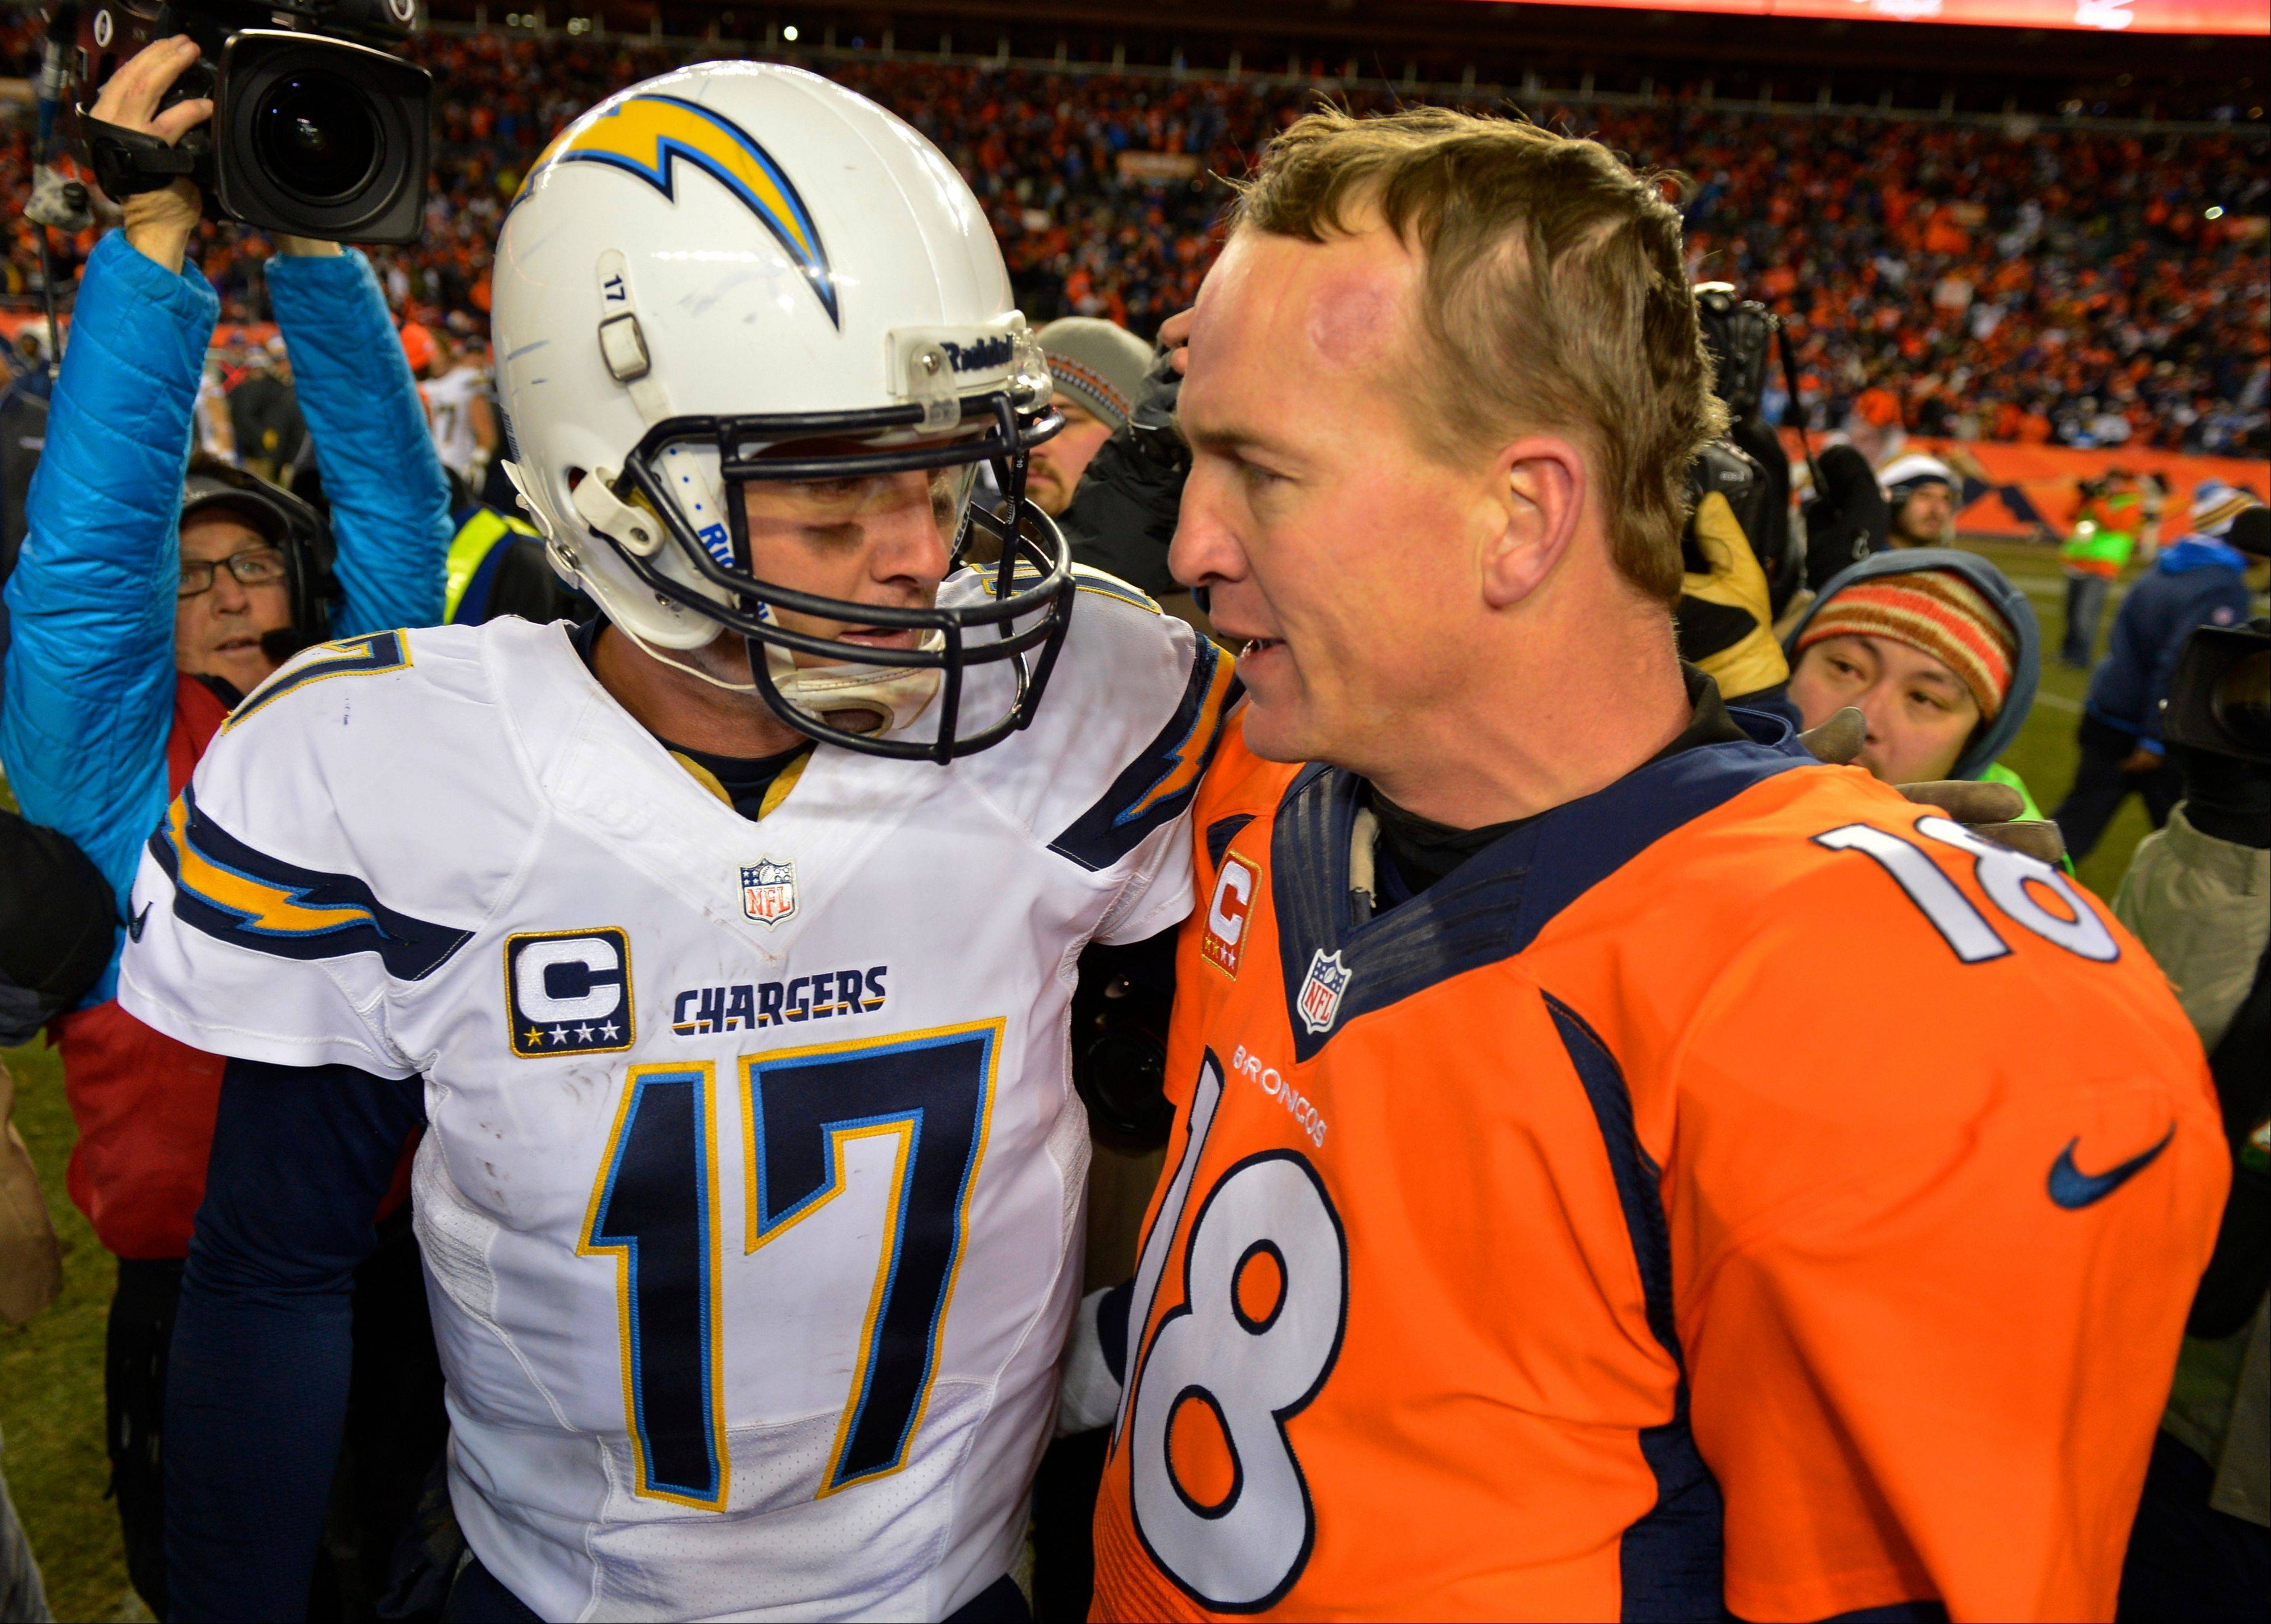 San Diego Chargers quarterback Philip Rivers, left, and Denver Broncos quarterback Peyton Manning greet each other at midfield after the Broncos beat the Chargers 24-17 in an NFL AFC division playoff football game, Sunday, Jan. 12, 2014, in Denver.